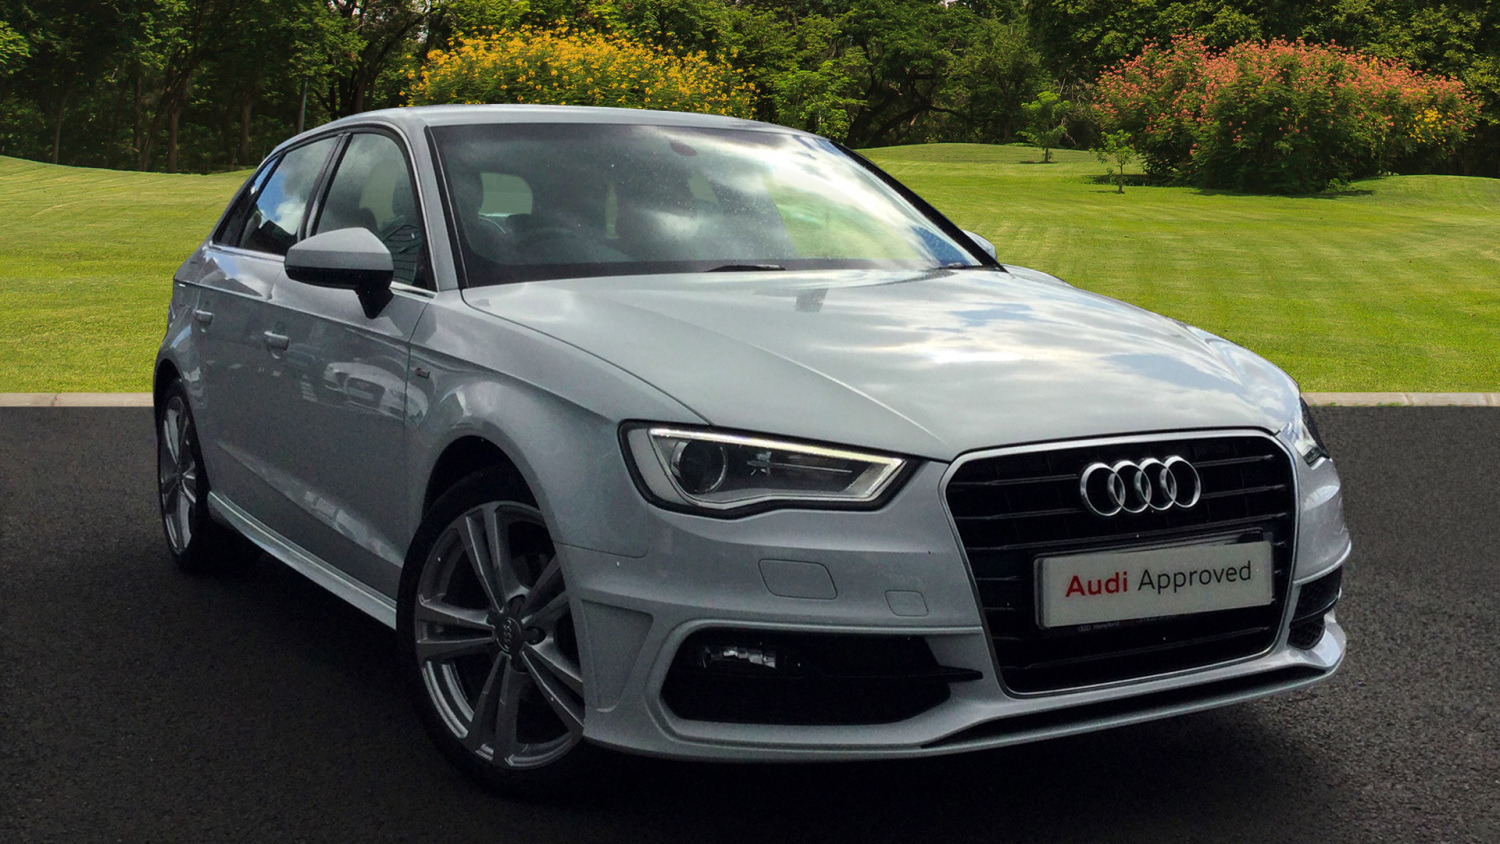 used audi a3 1 4 tfsi 150 s line 5dr petrol hatchback for sale bristol street motors. Black Bedroom Furniture Sets. Home Design Ideas